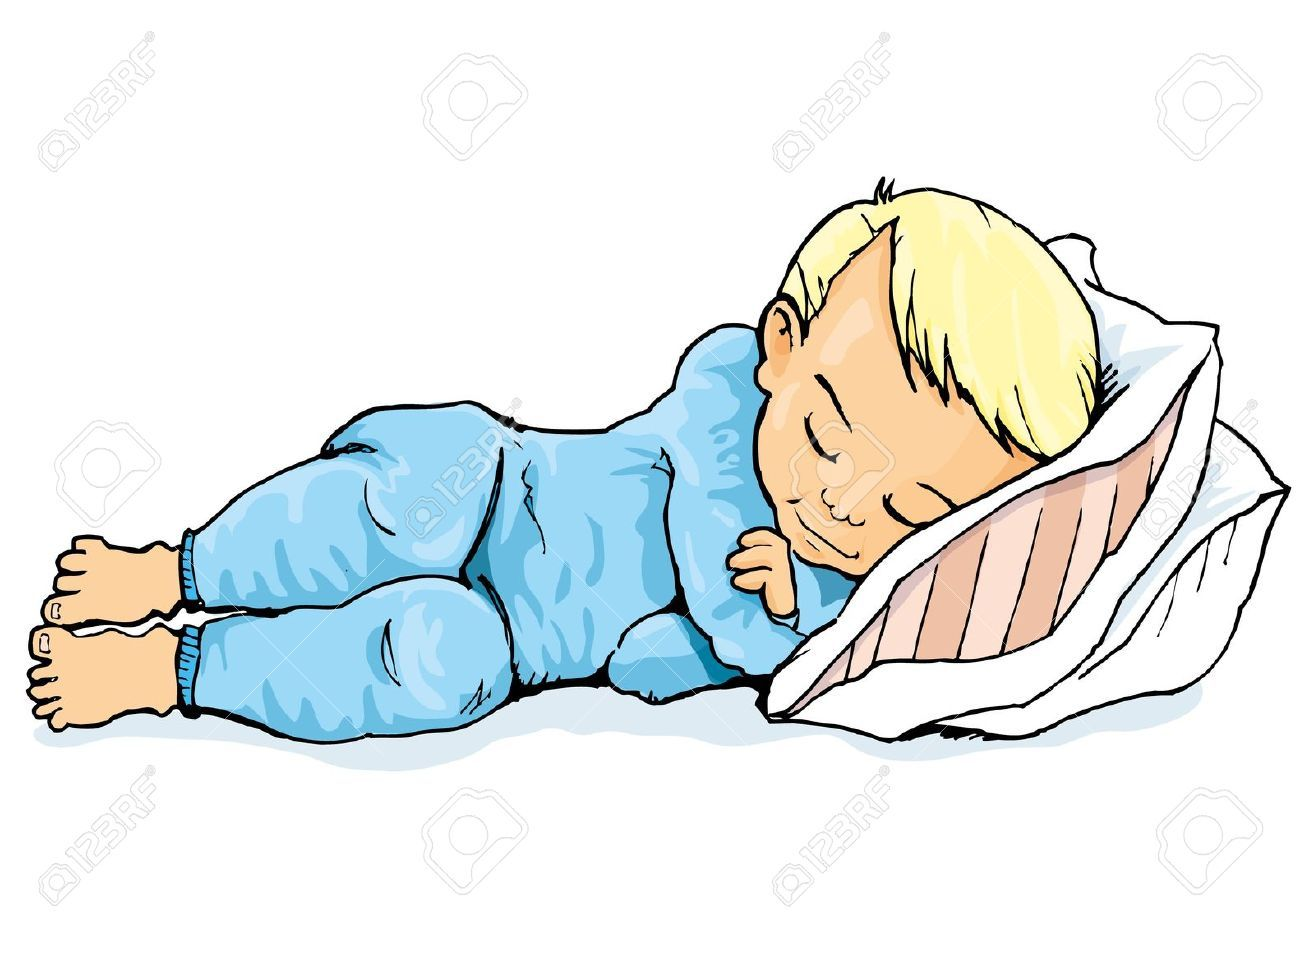 Sleeping boy clipart clipart black and white Sleeping boy clipart 2 » Clipart Portal clipart black and white